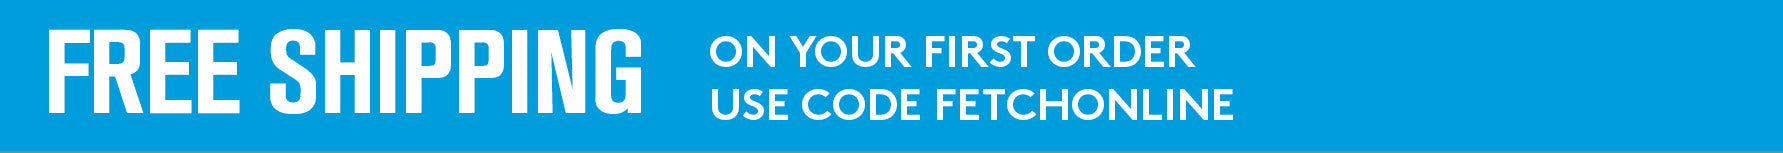 Receive free shipping on your first online purchase. Valid on pet food, treats and supplies.